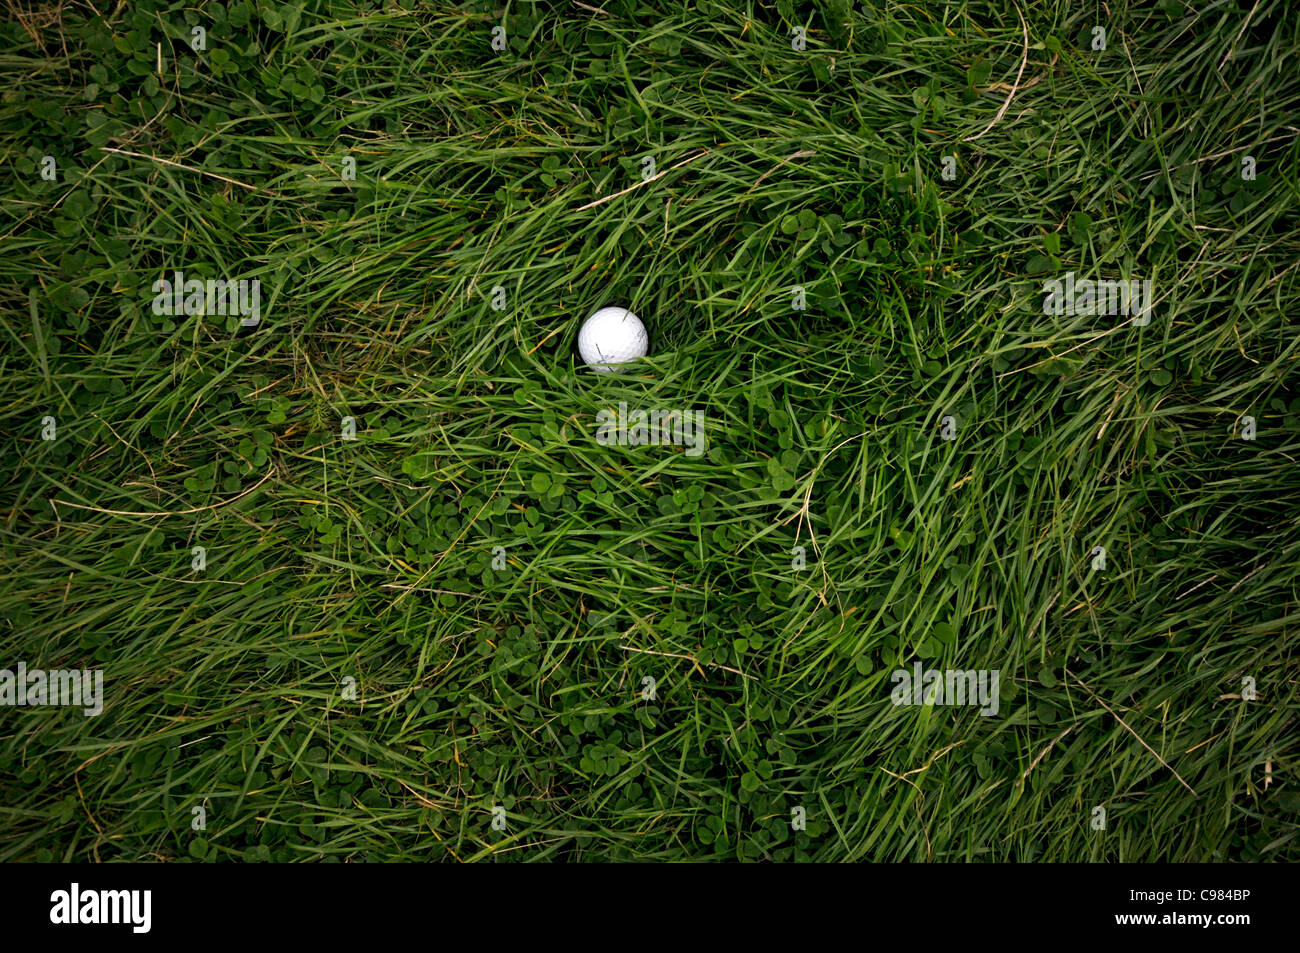 Golf ball on the rough, long grass, golf course - Stock Image